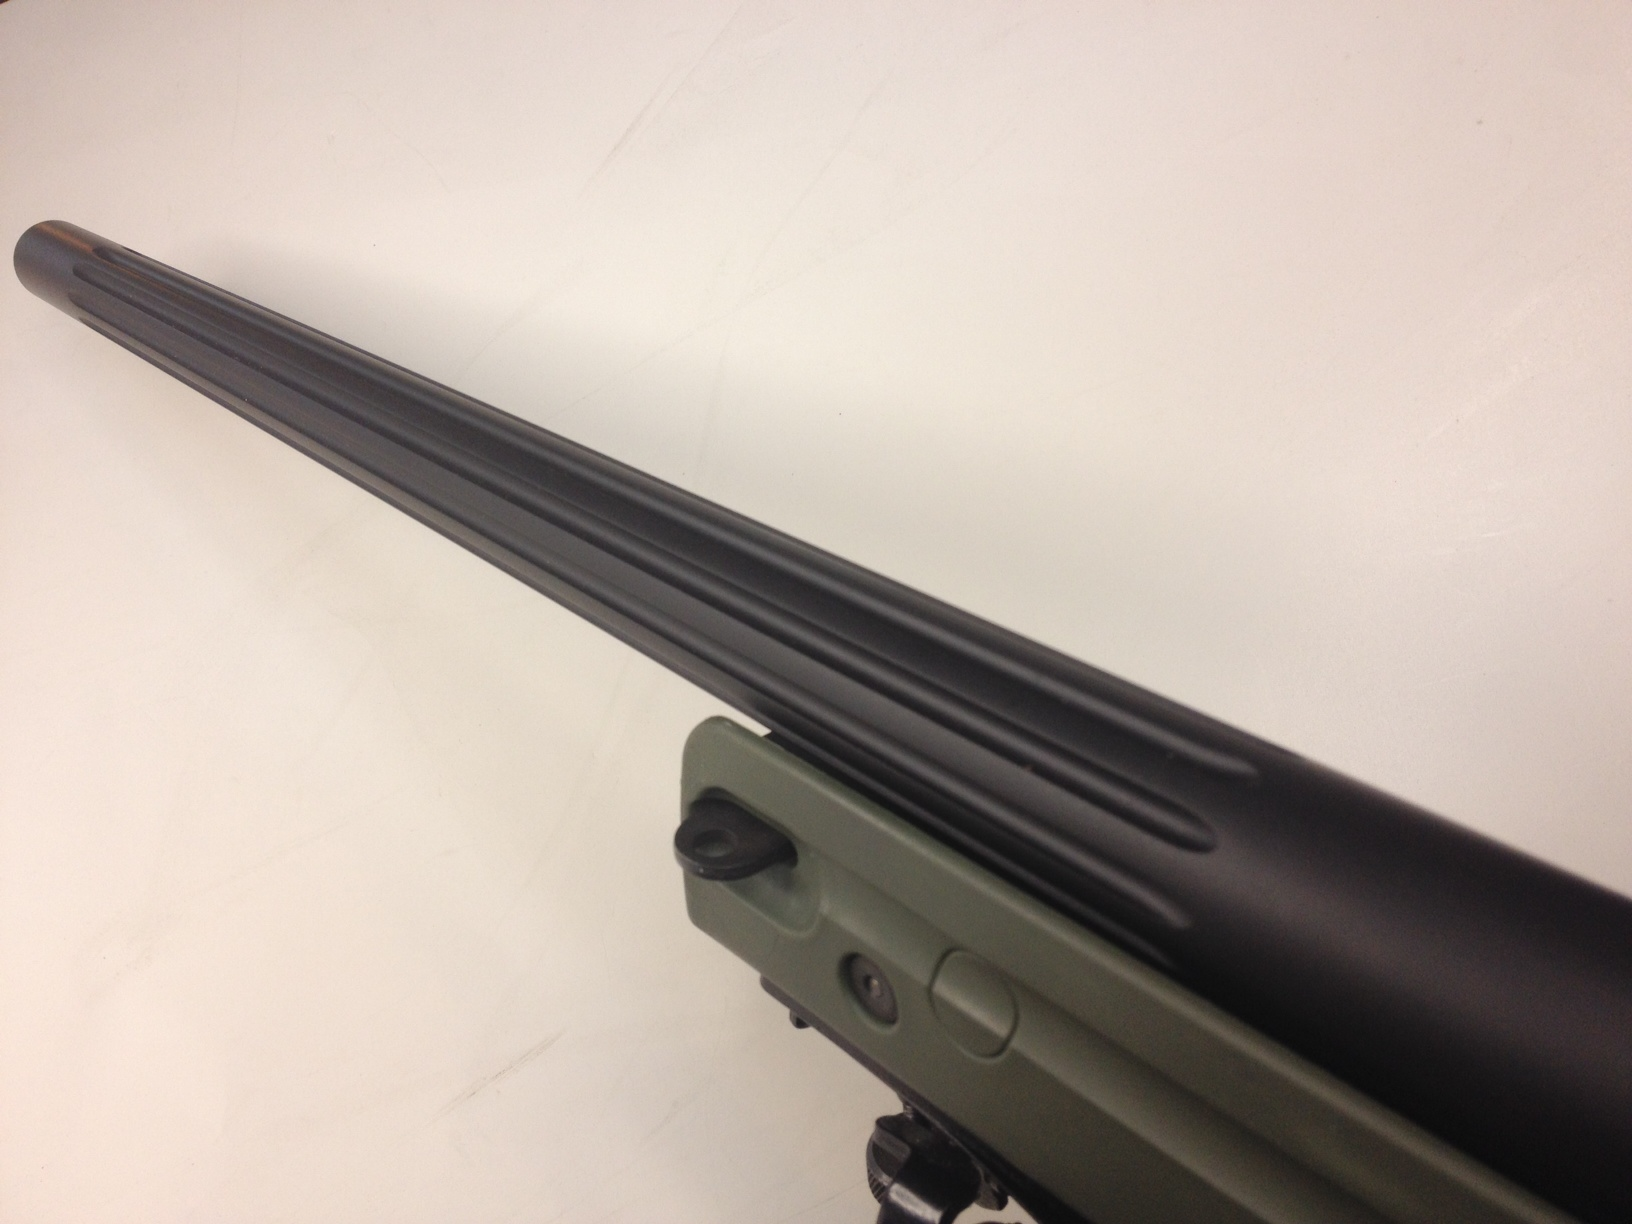 How to flute a rifle barrel